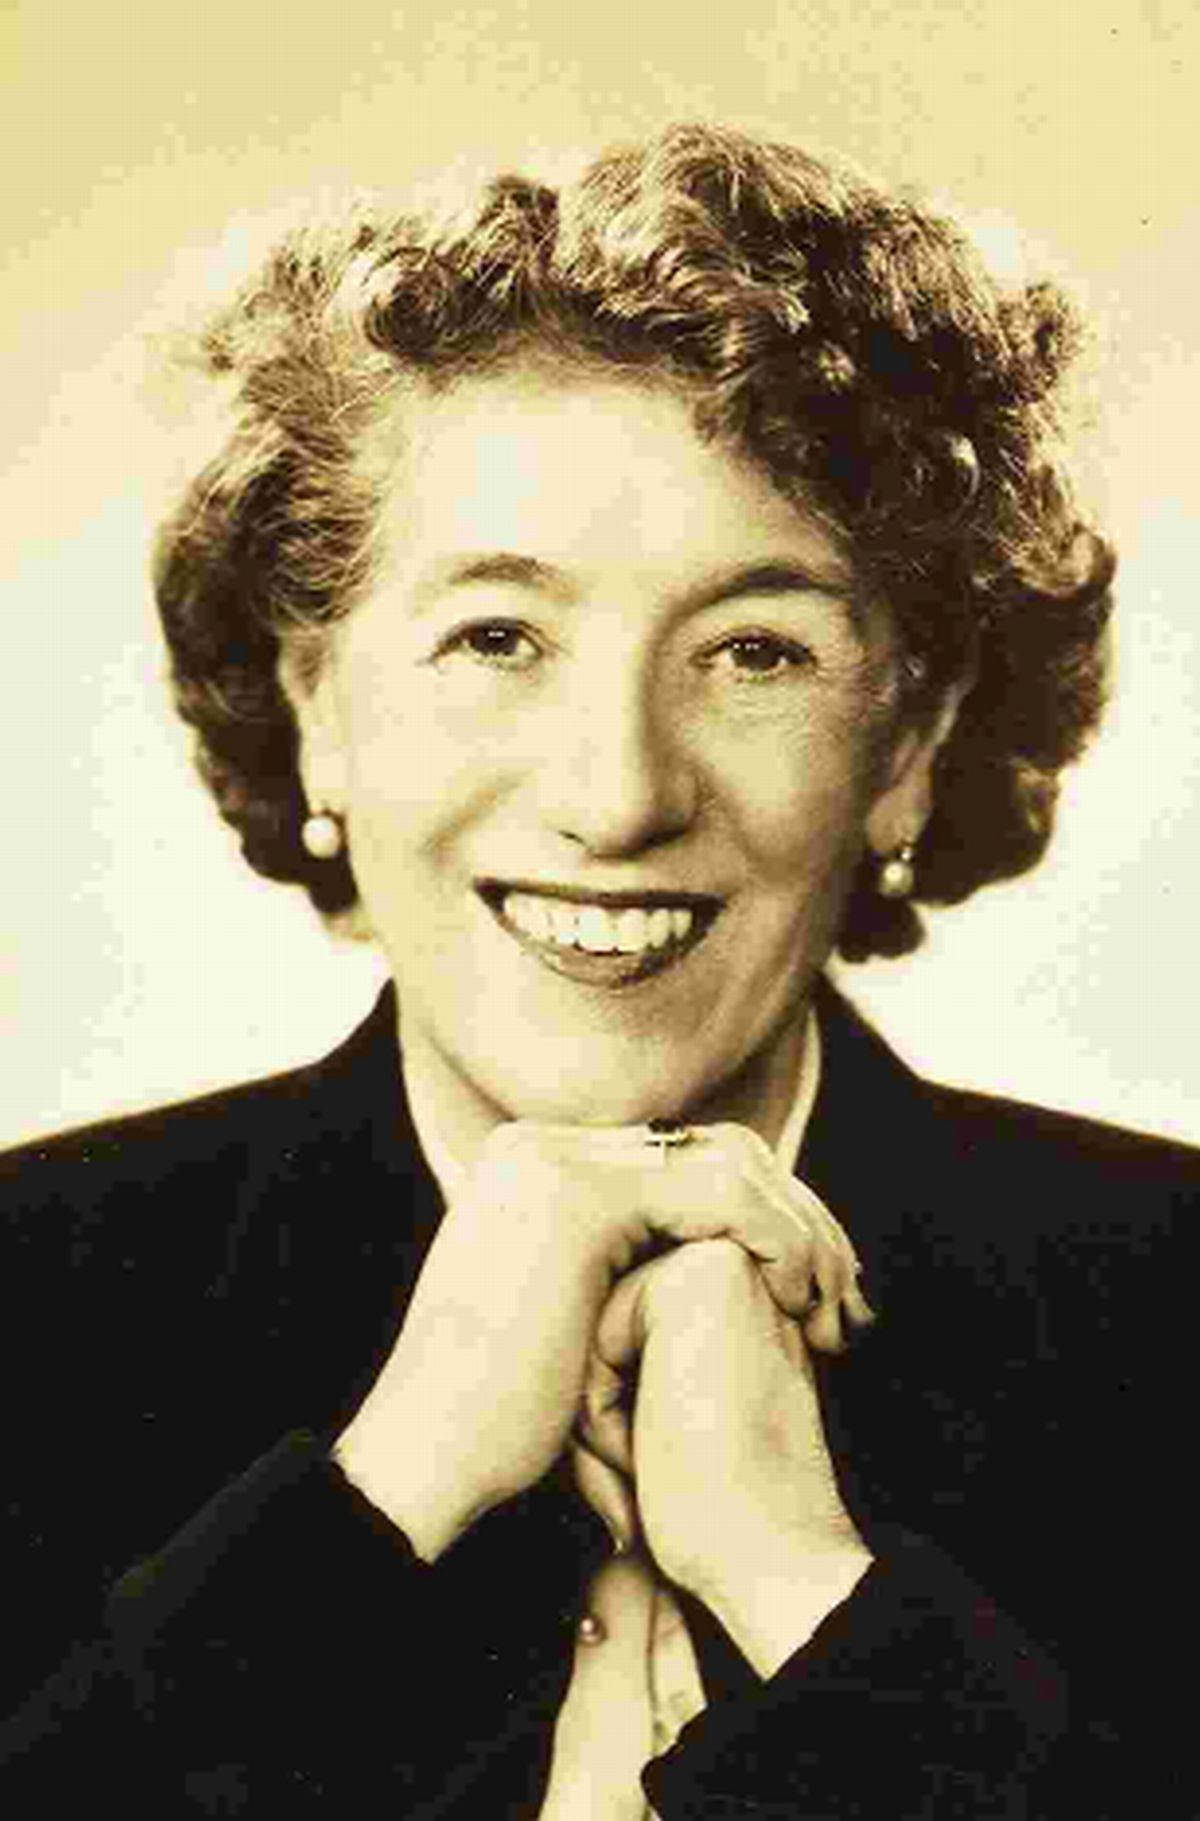 Bournemouth Echo: ICON: Children's writer Enid Blyton